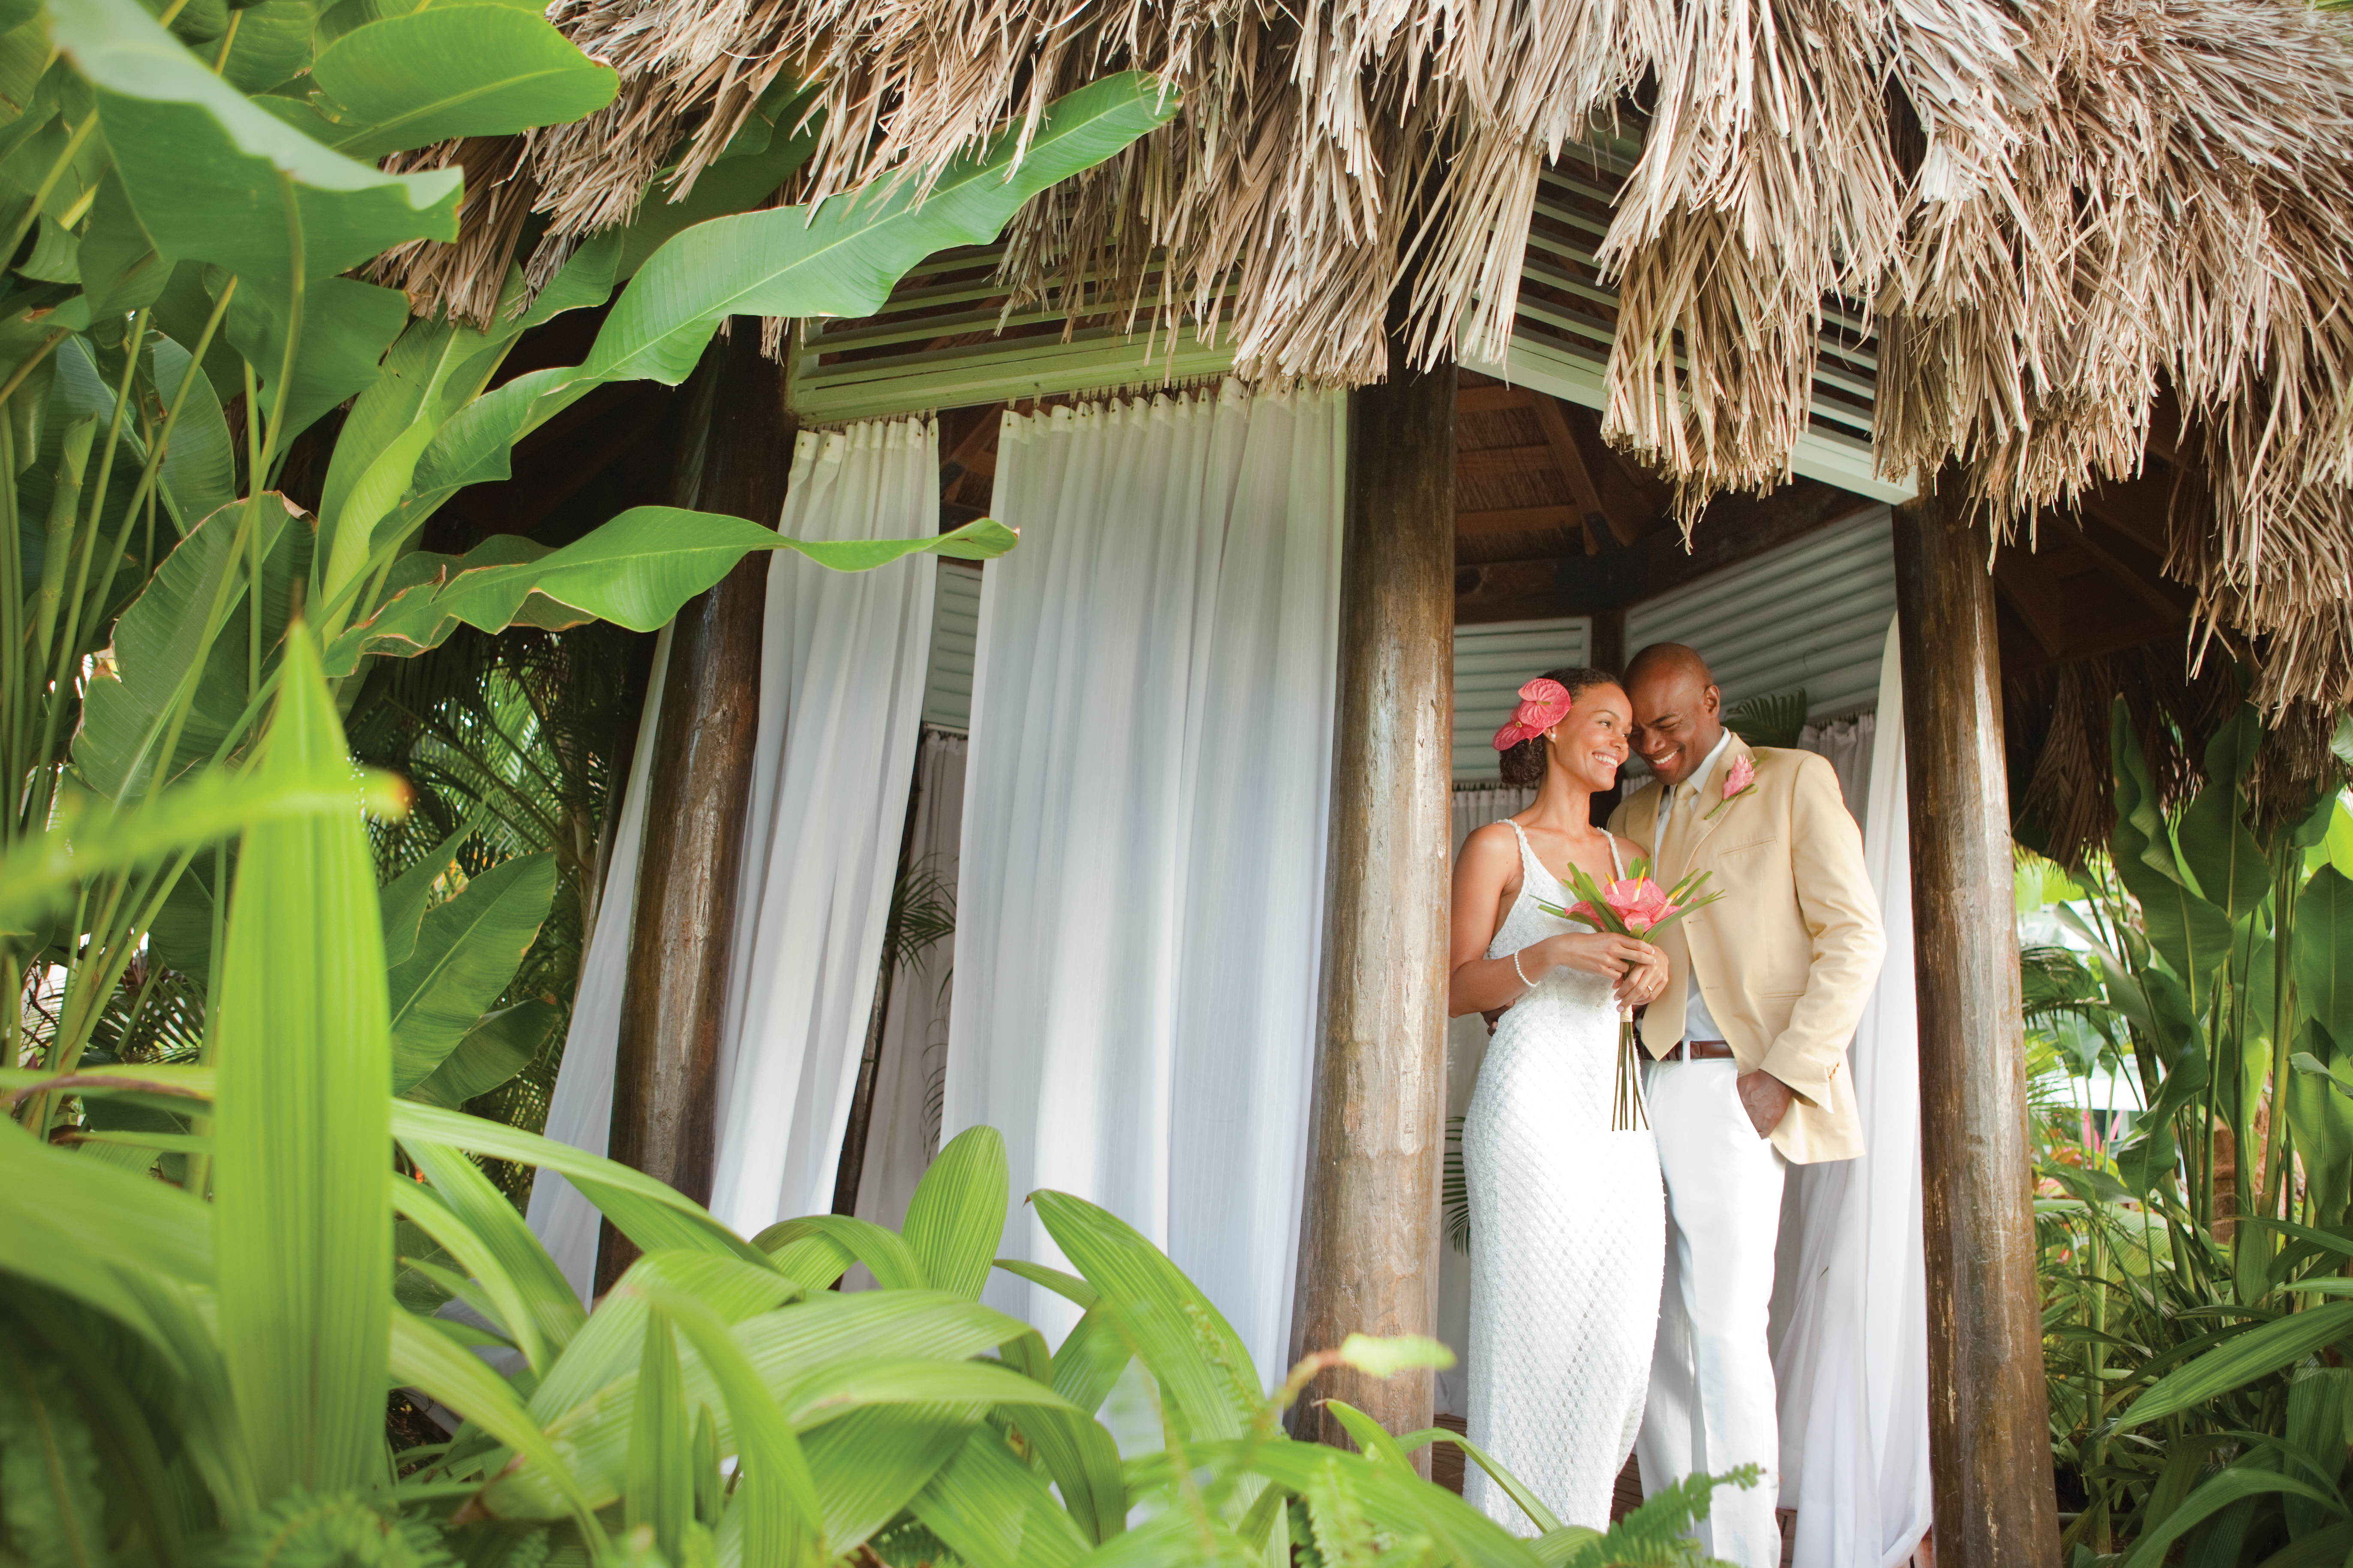 Travel Agency All-Inclusive Resort Couples Negril 19